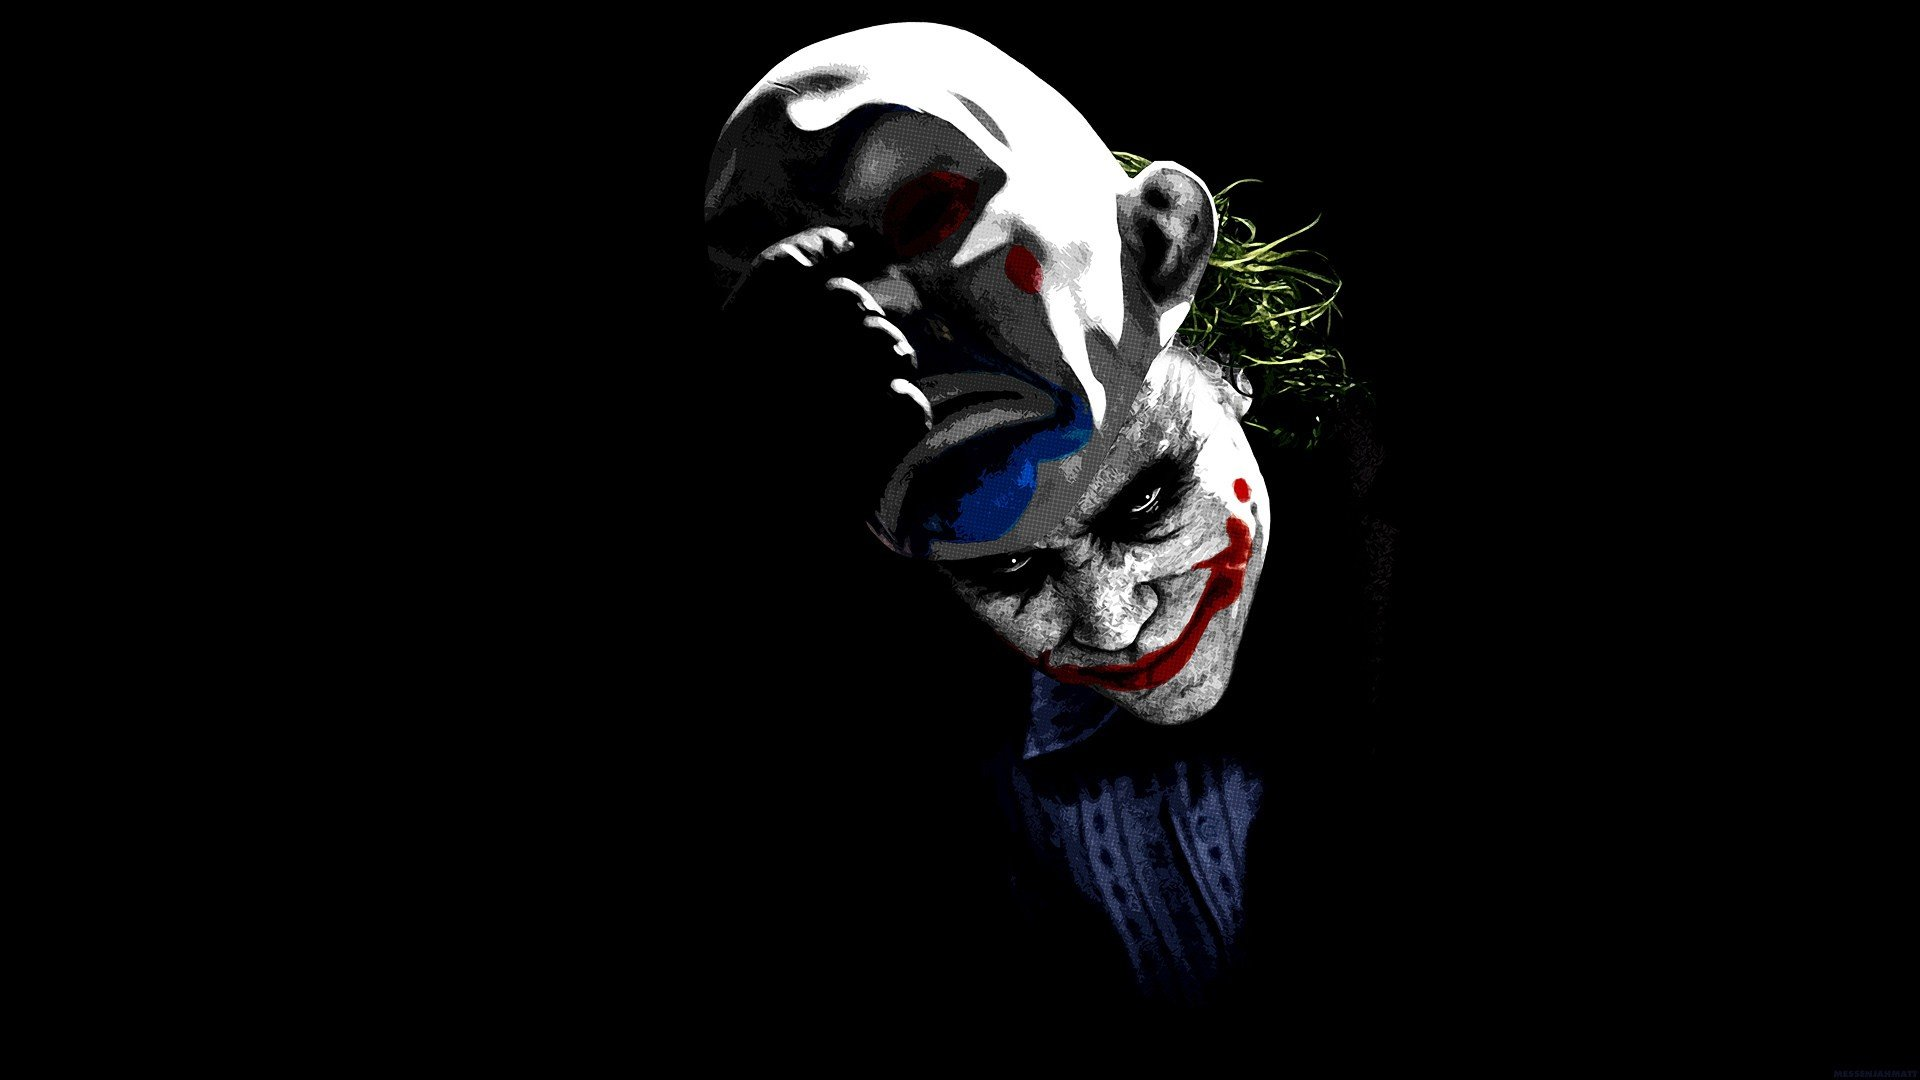 Evil Clown Wallpaper Hd 1920x1080